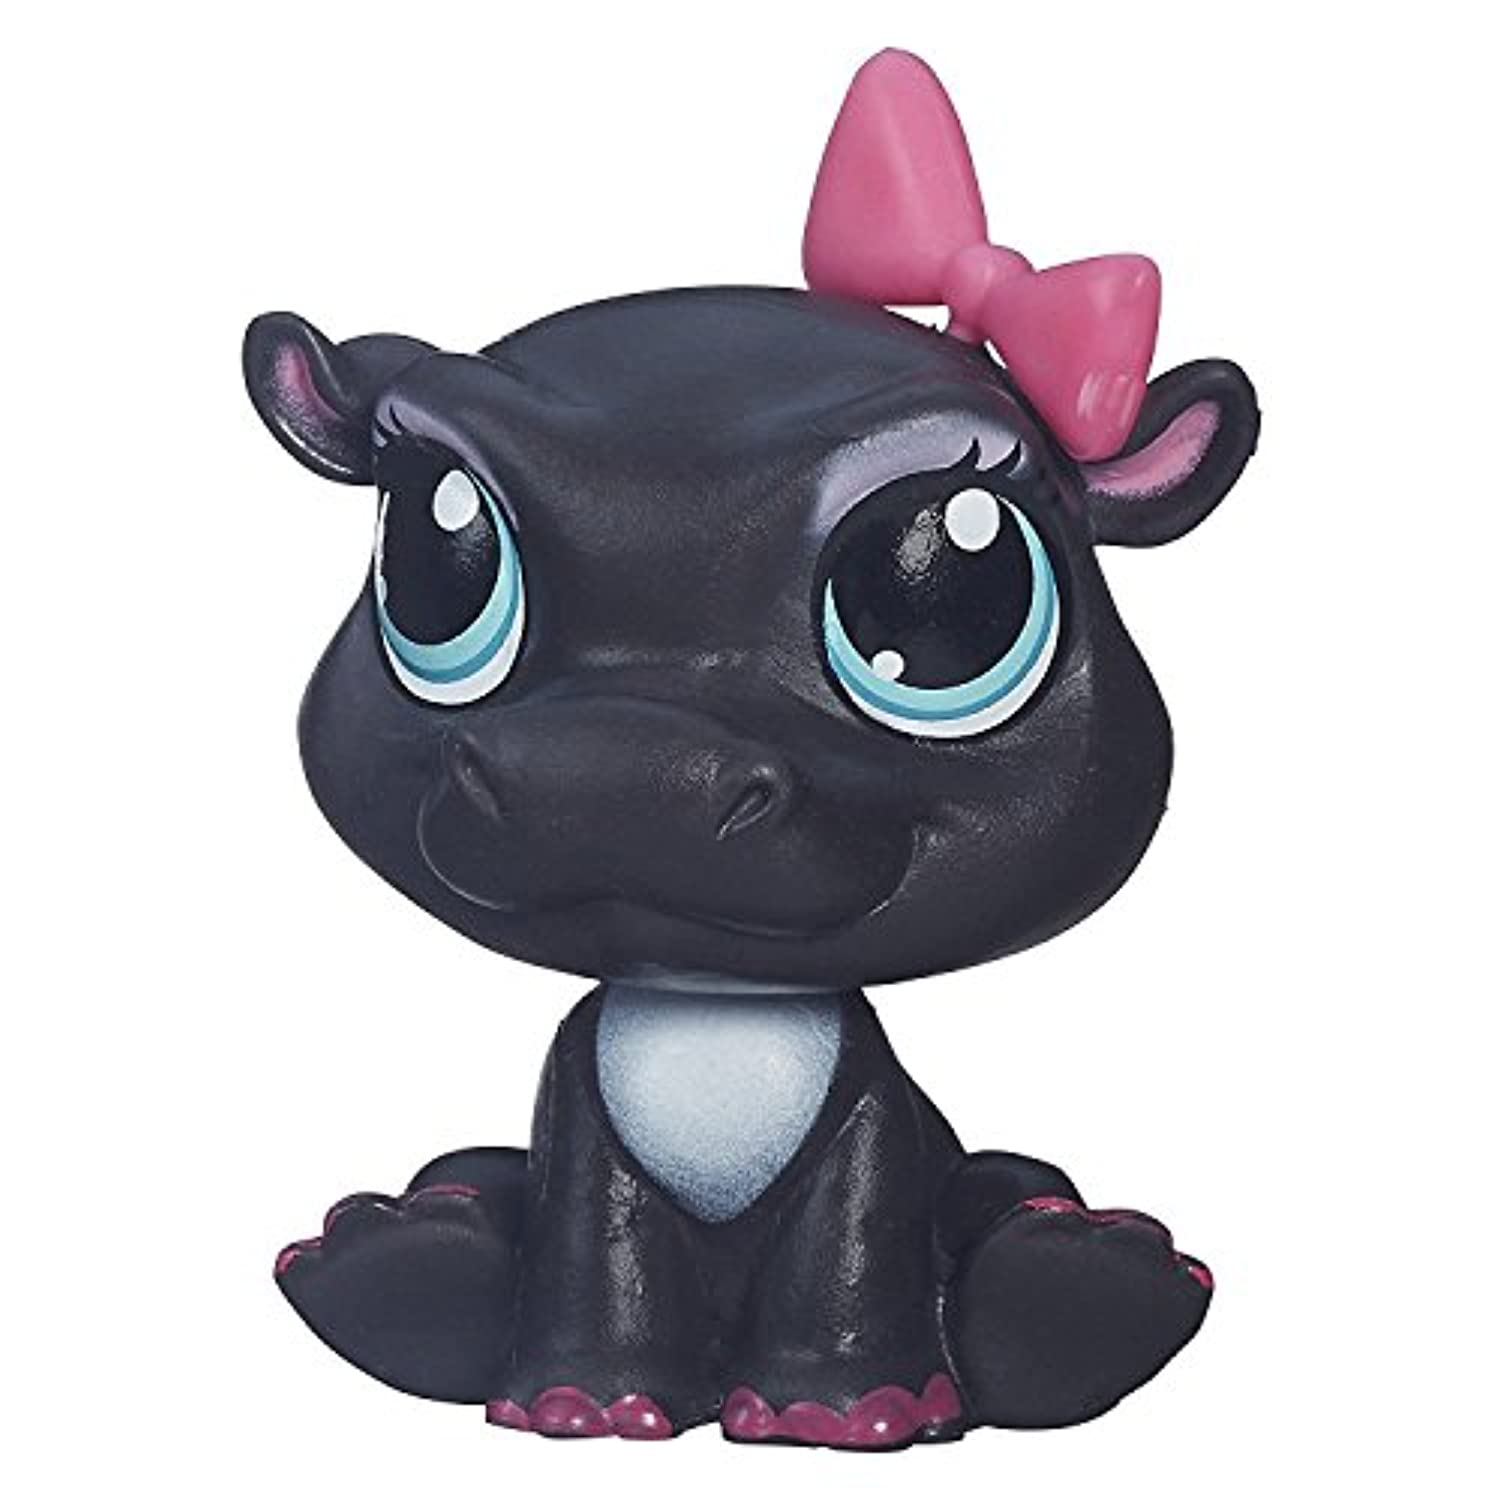 Littlest Pet Shop Get The Pets Single Pack Yolanda Yawnson Hippo 3956 [並行輸入品]